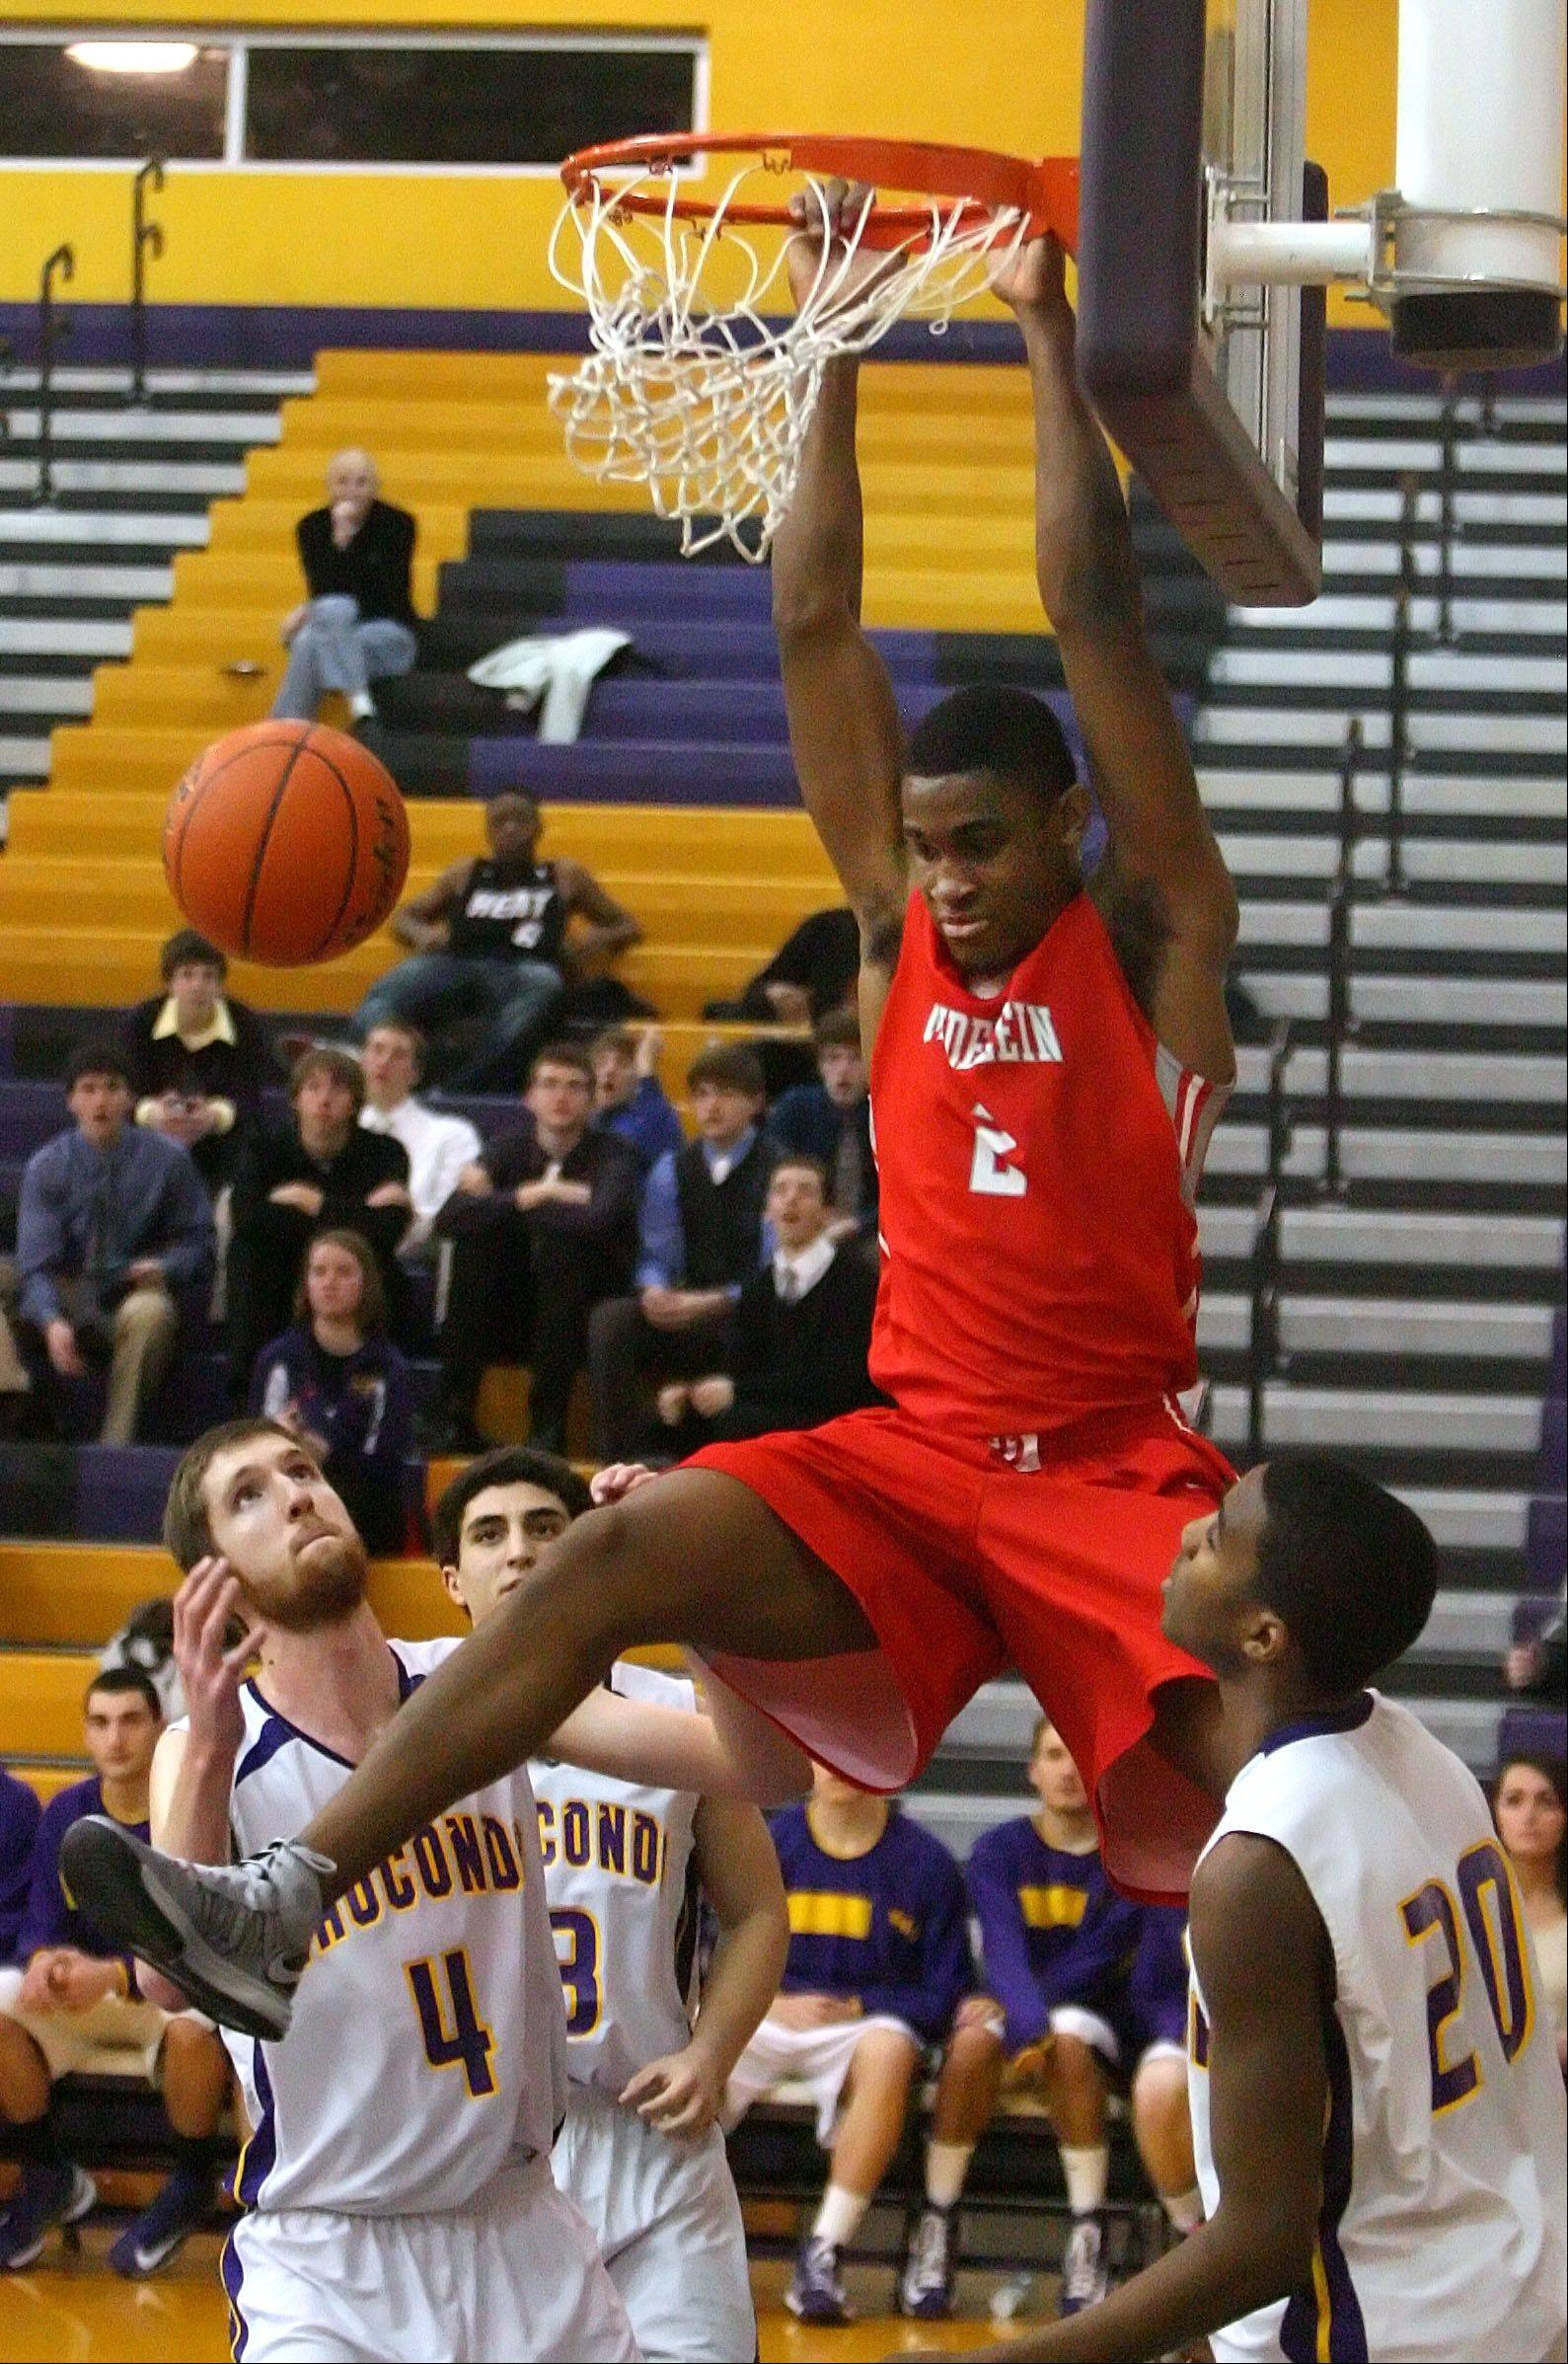 Mundelein's Chino Ebube goes in for the dunk over Wauconda's Ricky Sidlowski, left, and Devon King during Wednesday's game in Wauconda.